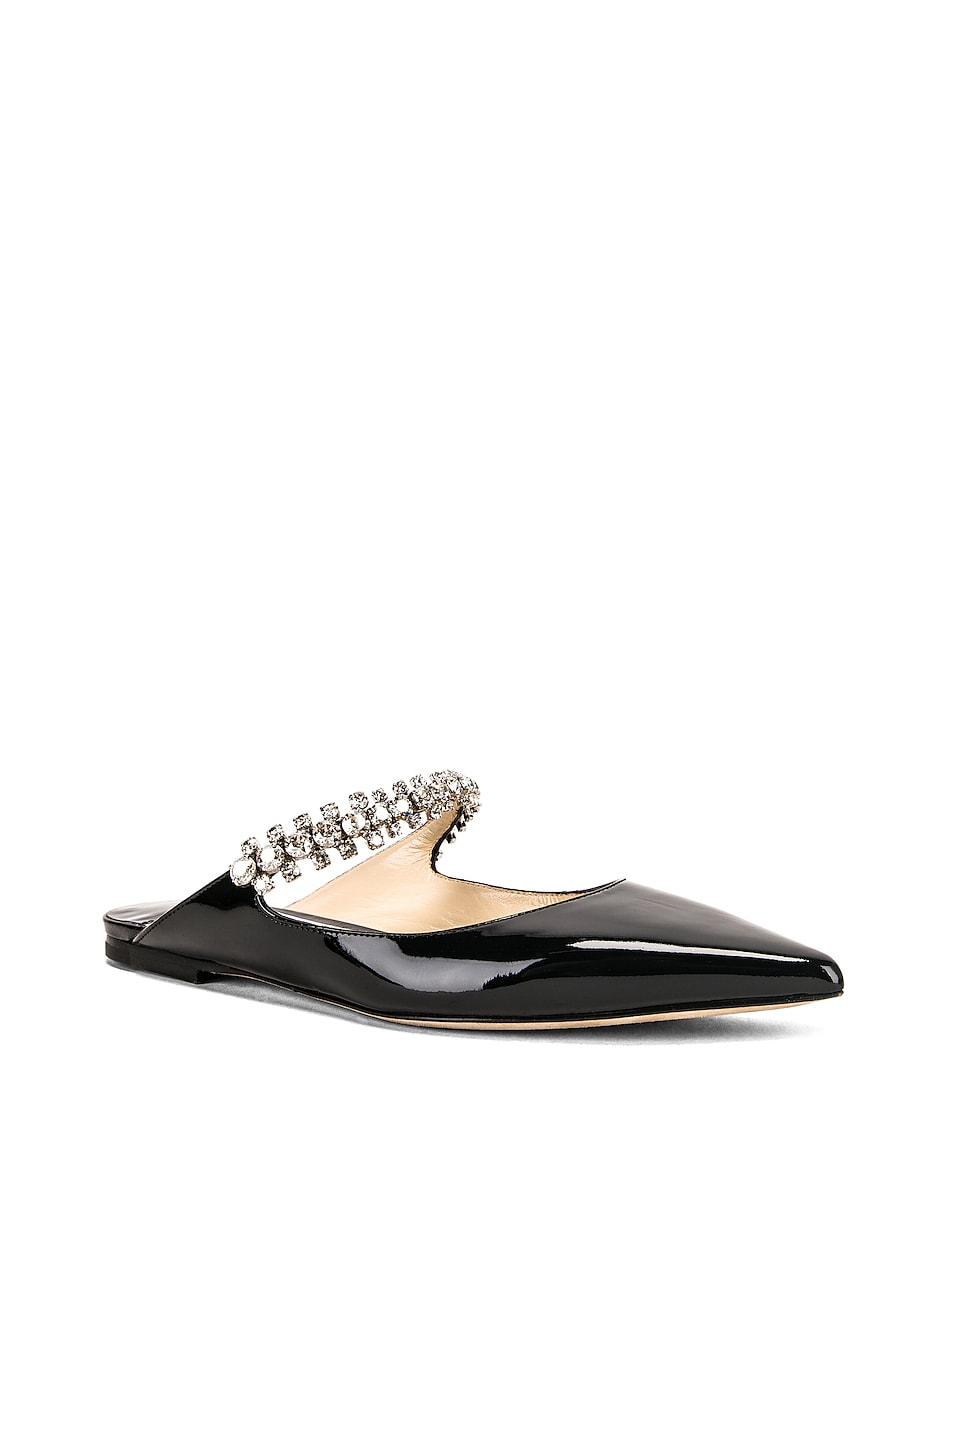 Image 2 of Jimmy Choo Patent Leather Bing Flat in Black